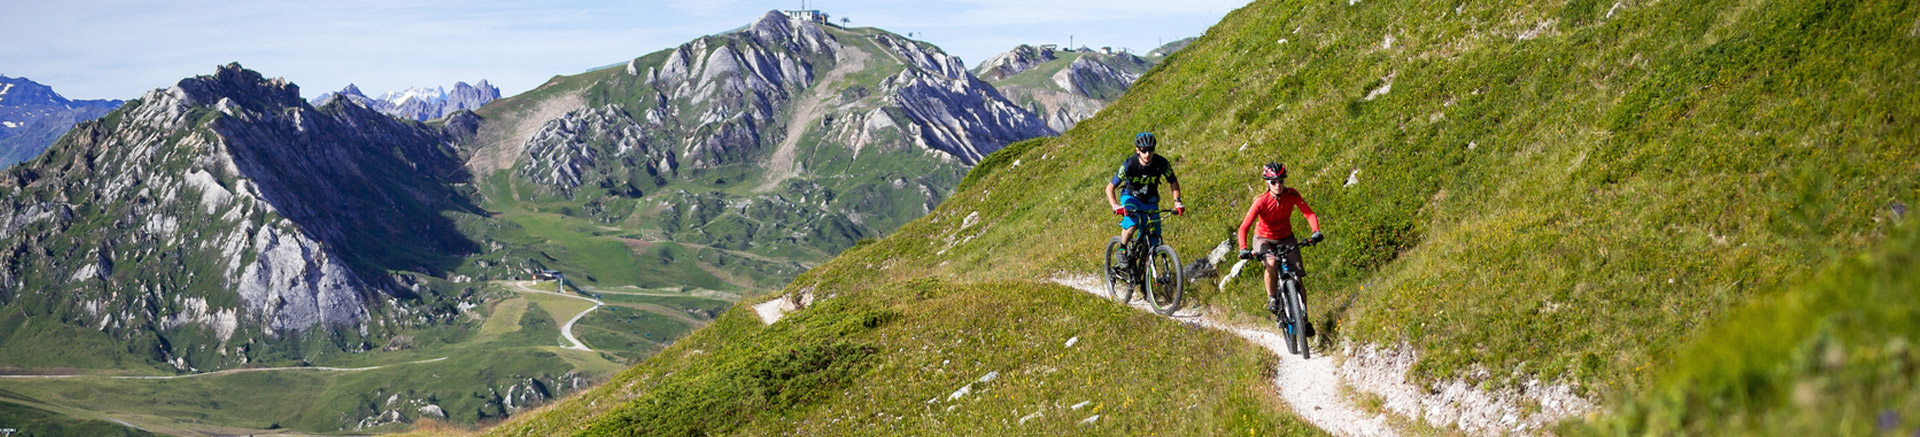 Moutain bike rental Intersport La Plagne Bellecote